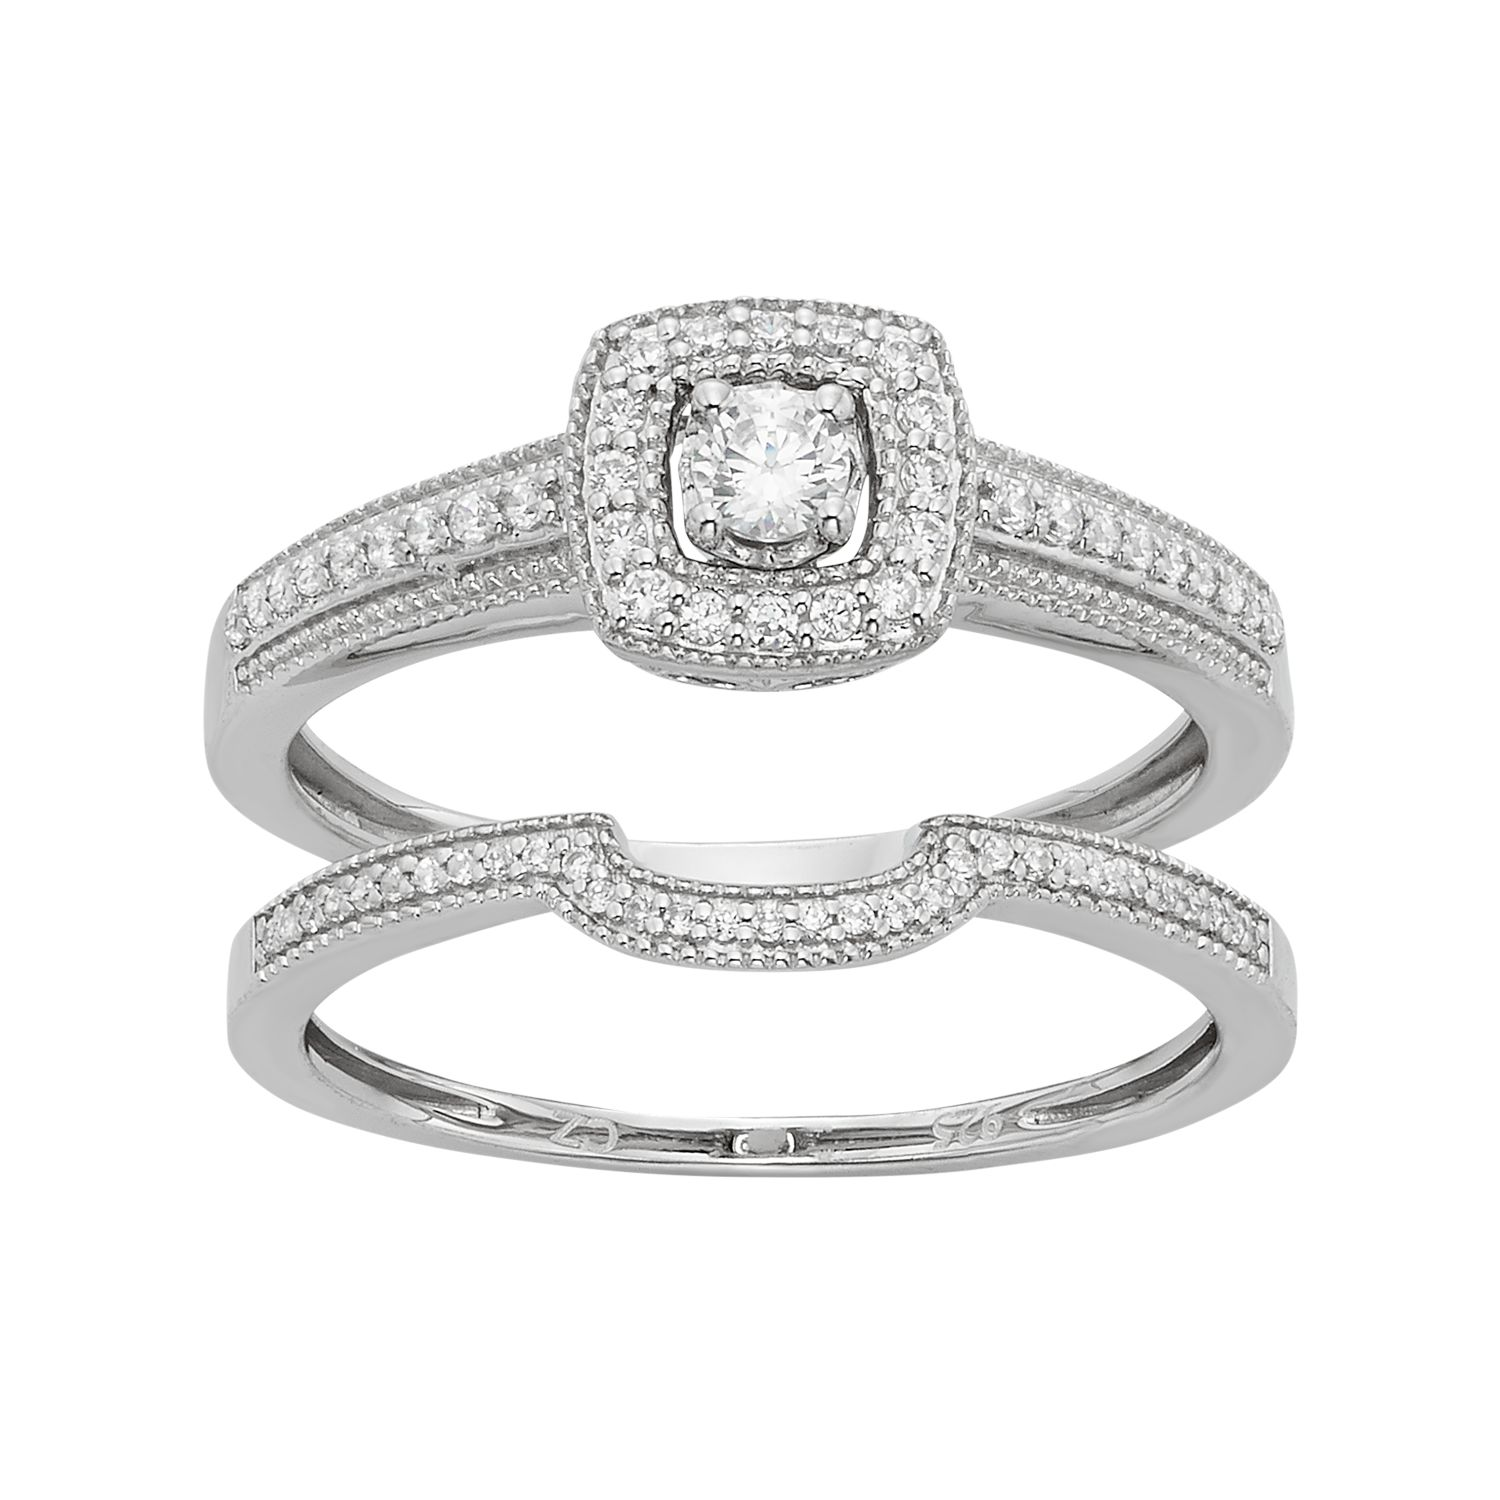 Diamond Tiered Square Engagement Ring Set in 10k White Gold 13